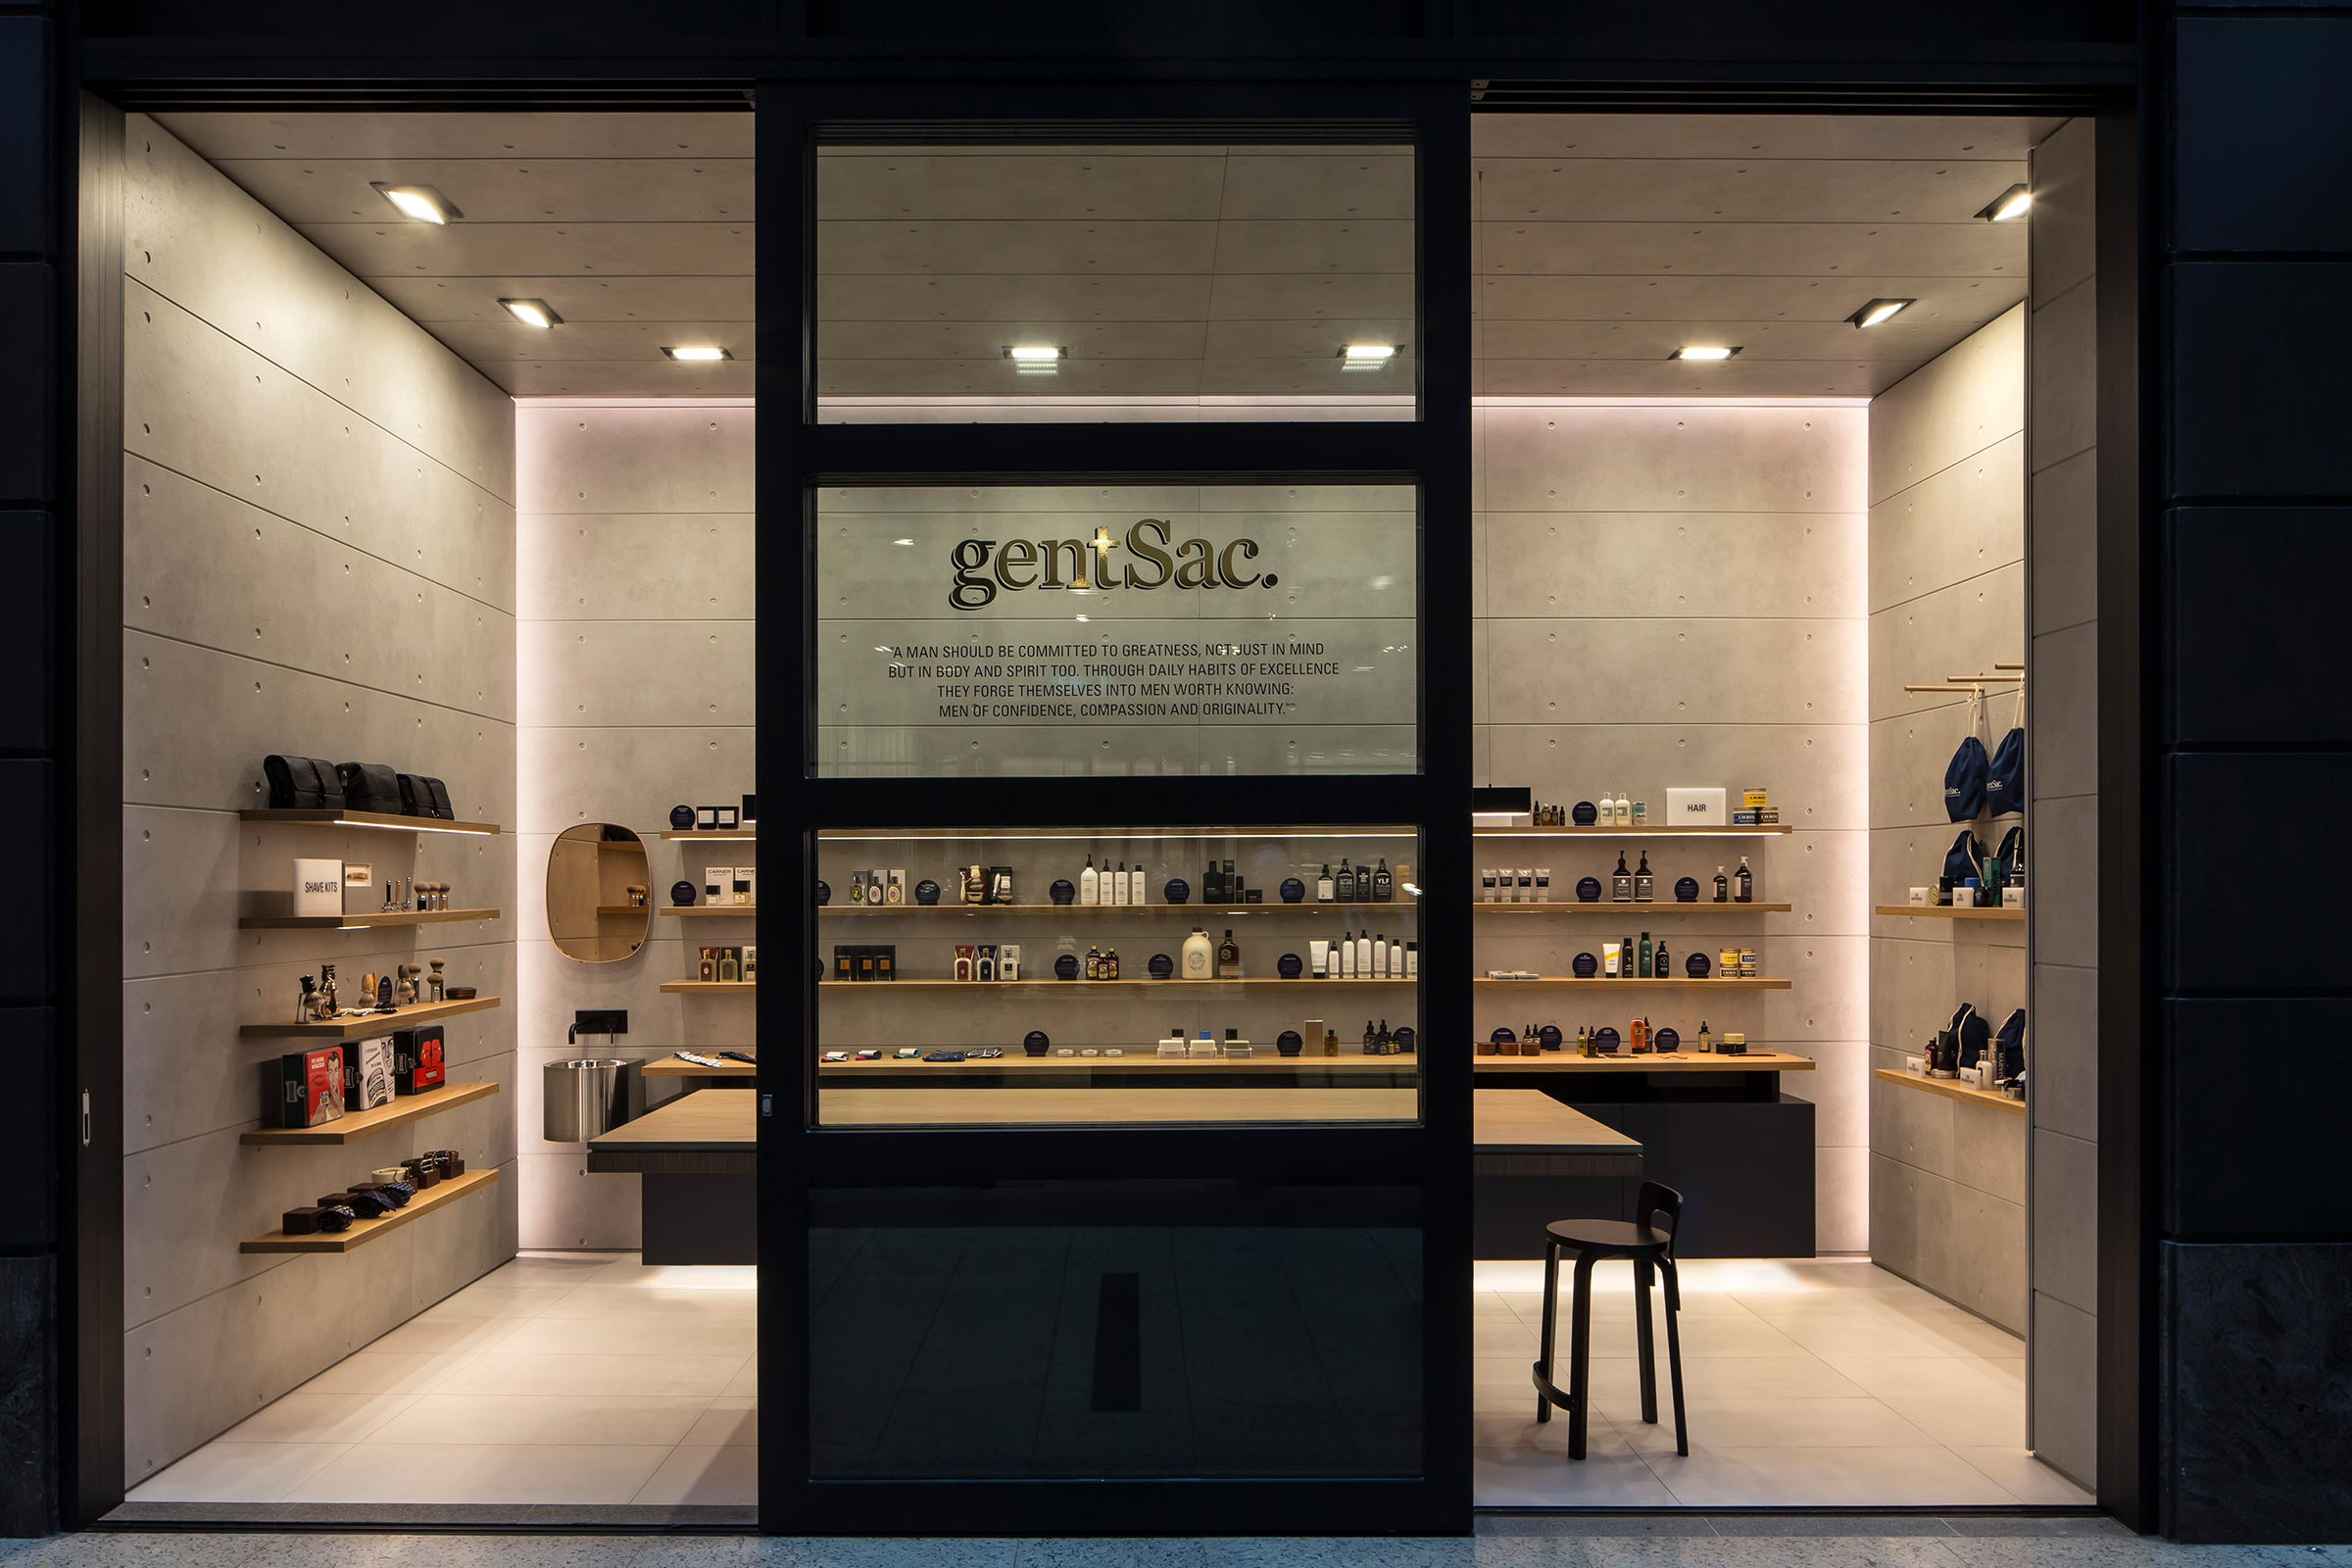 A New Men's Grooming Store In Sydney | gentSac Opens Flagship